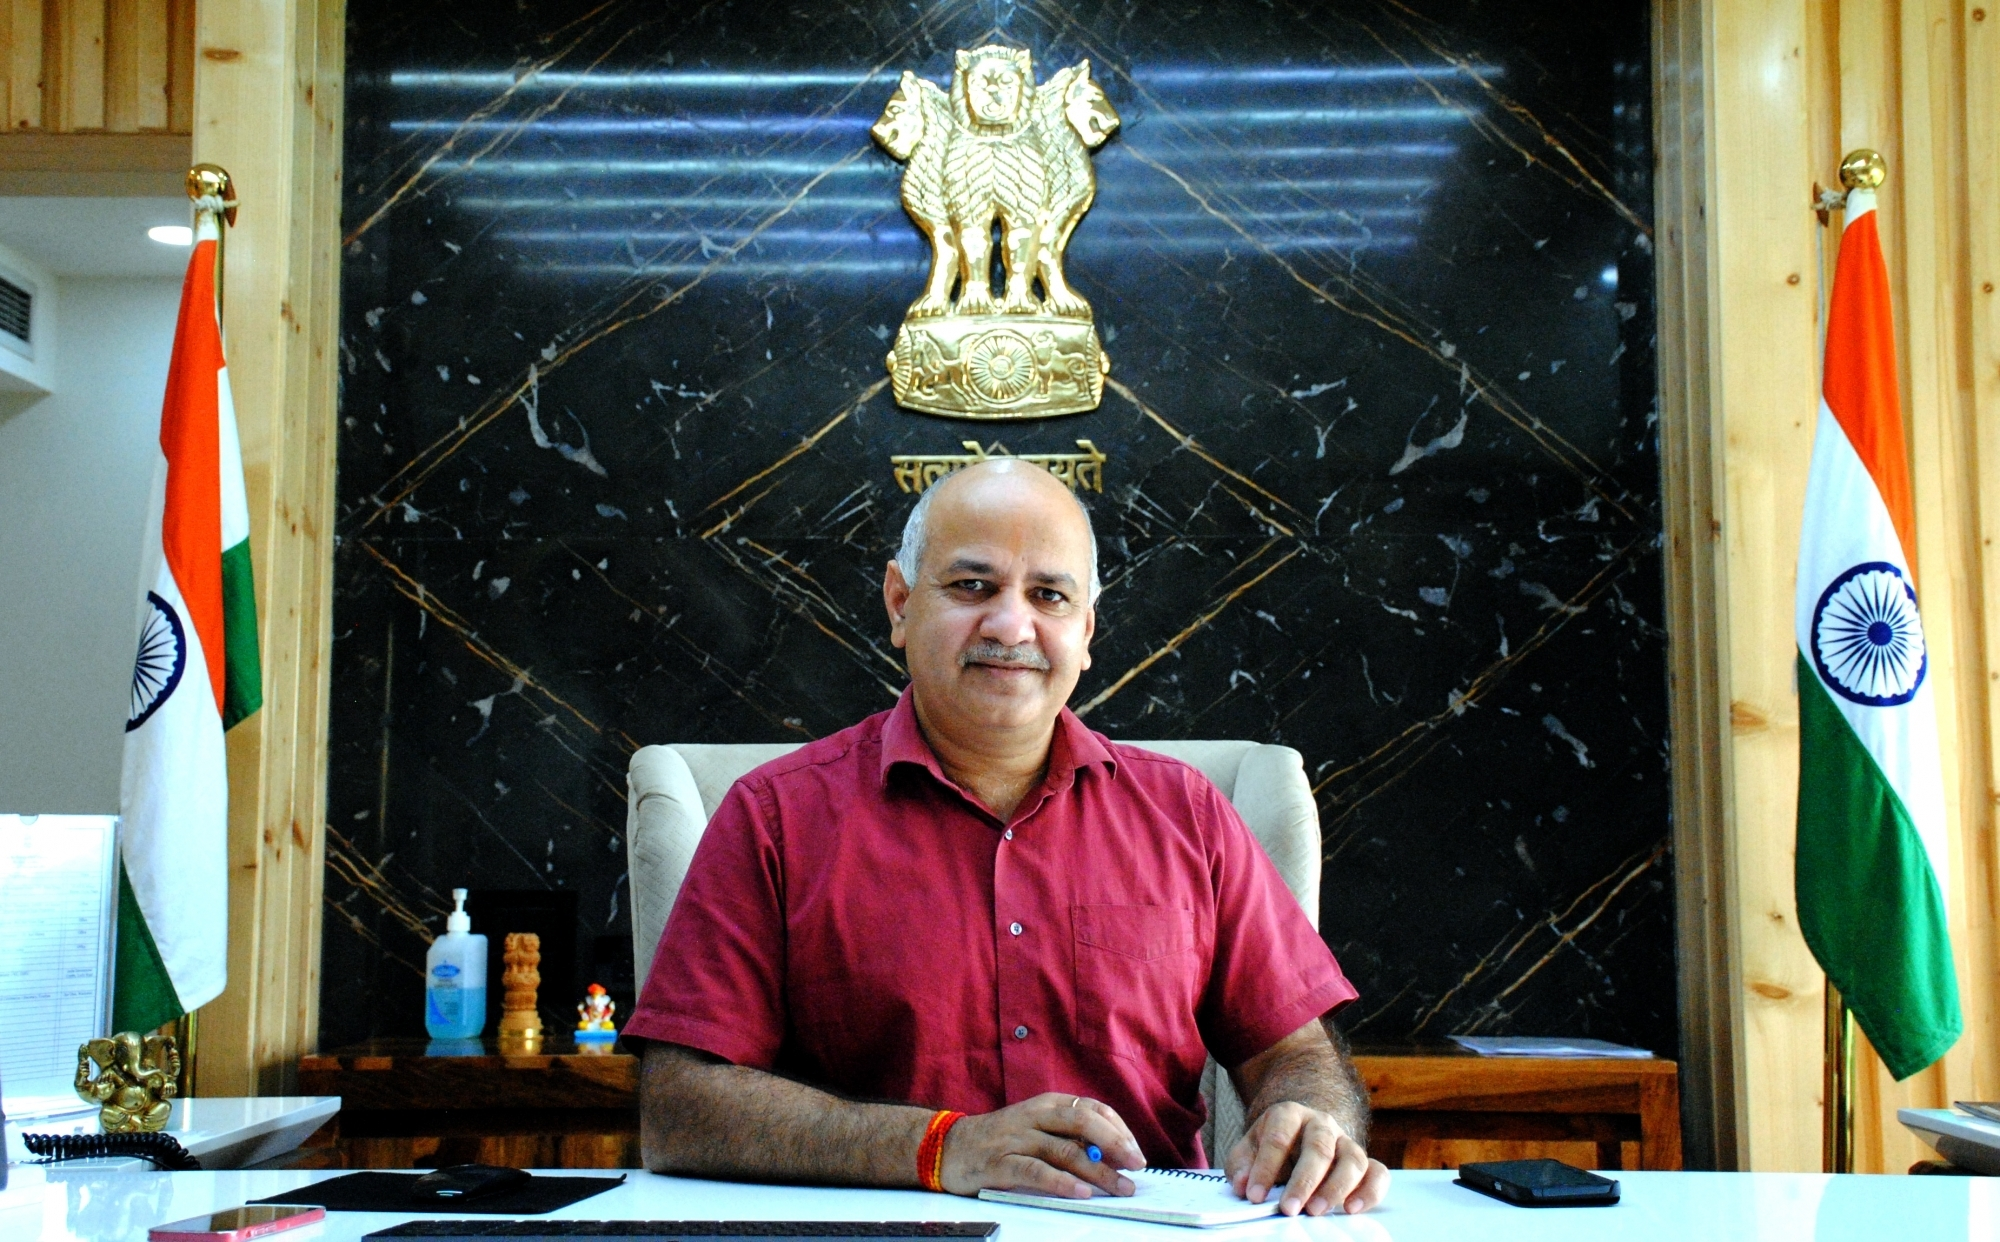 Delhi govt to get extra revenue of Rs 3,500 cr under new excise policy